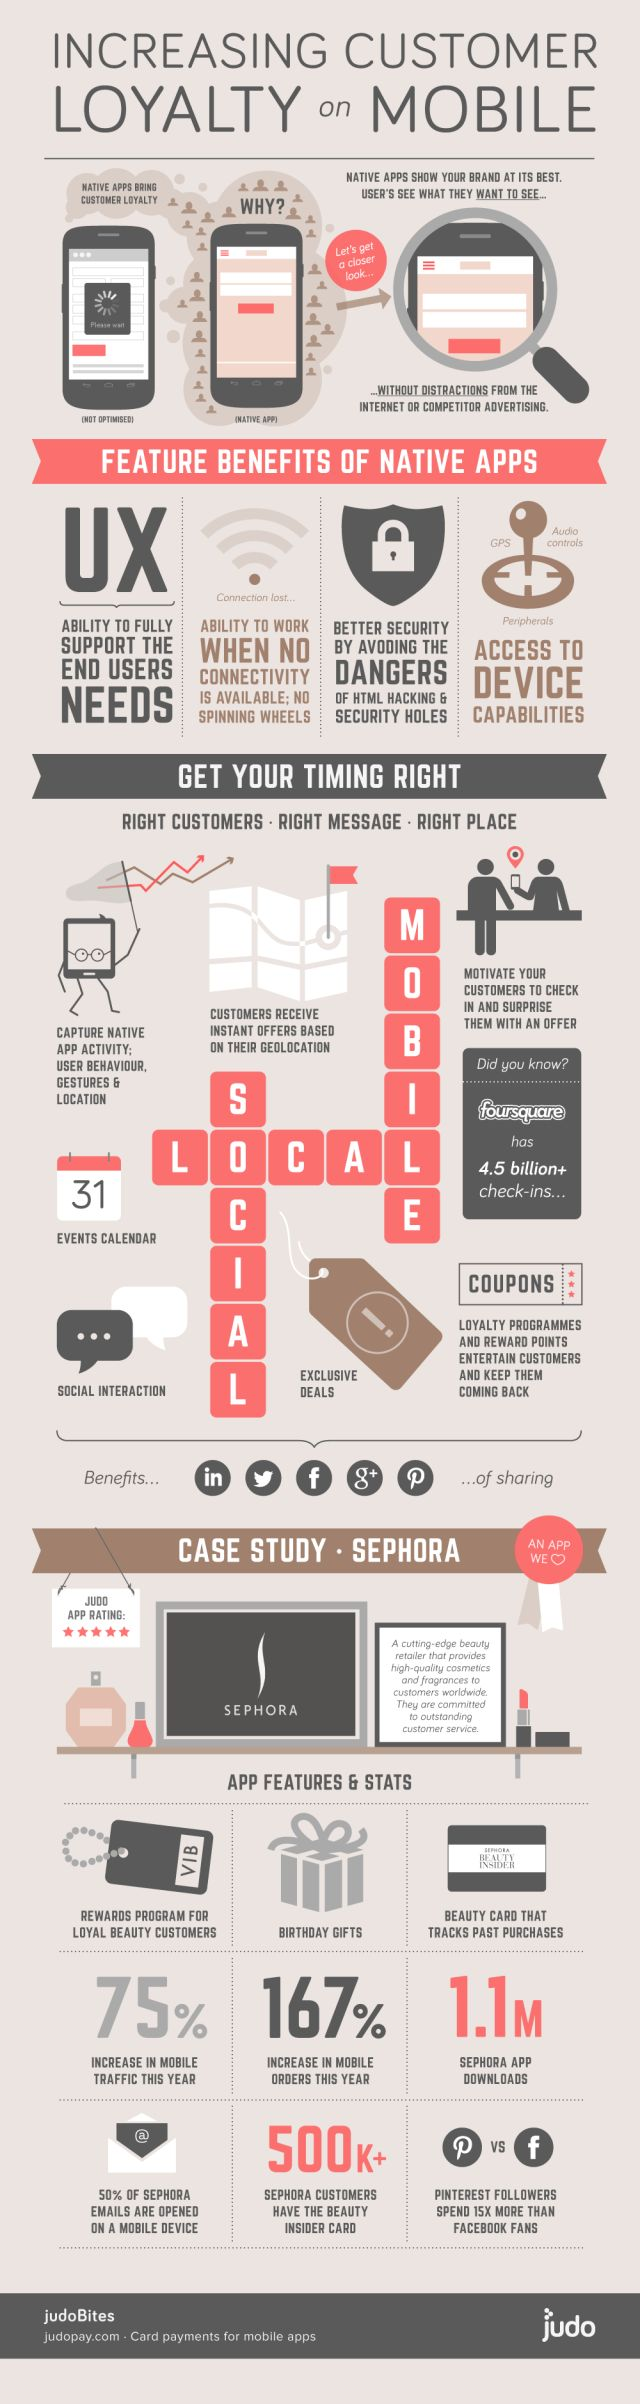 Increasing customer loyalty on mobile #infografia #infographic #marketing